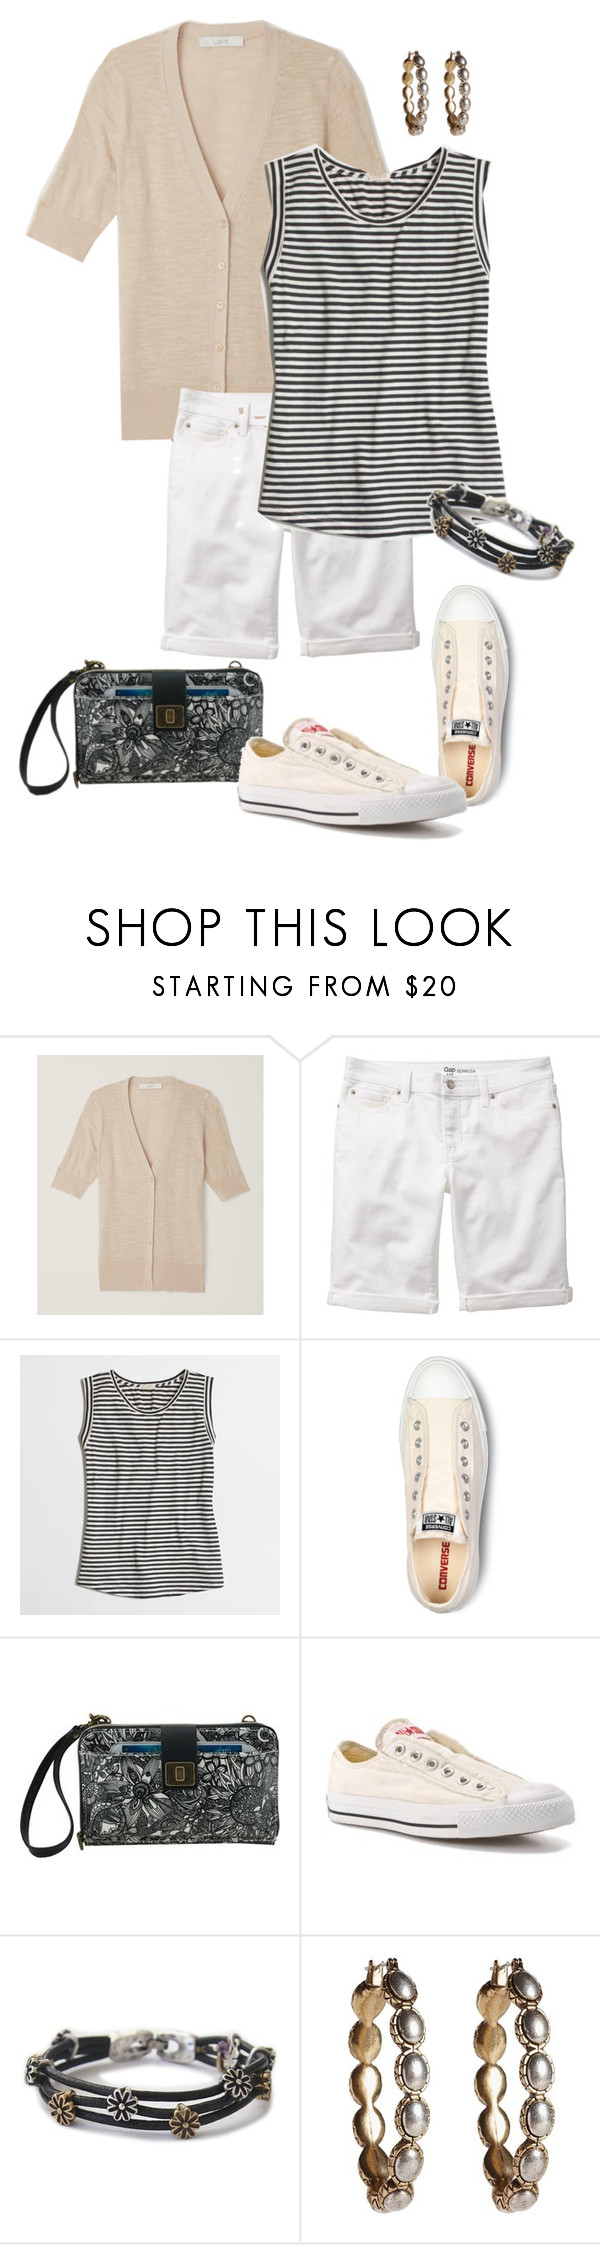 """""""Untitled #881"""" by texasgal50 ❤ liked on Polyvore featuring LOFT, Gap, J.Crew, Converse, Sakroots and Lucky Brand"""